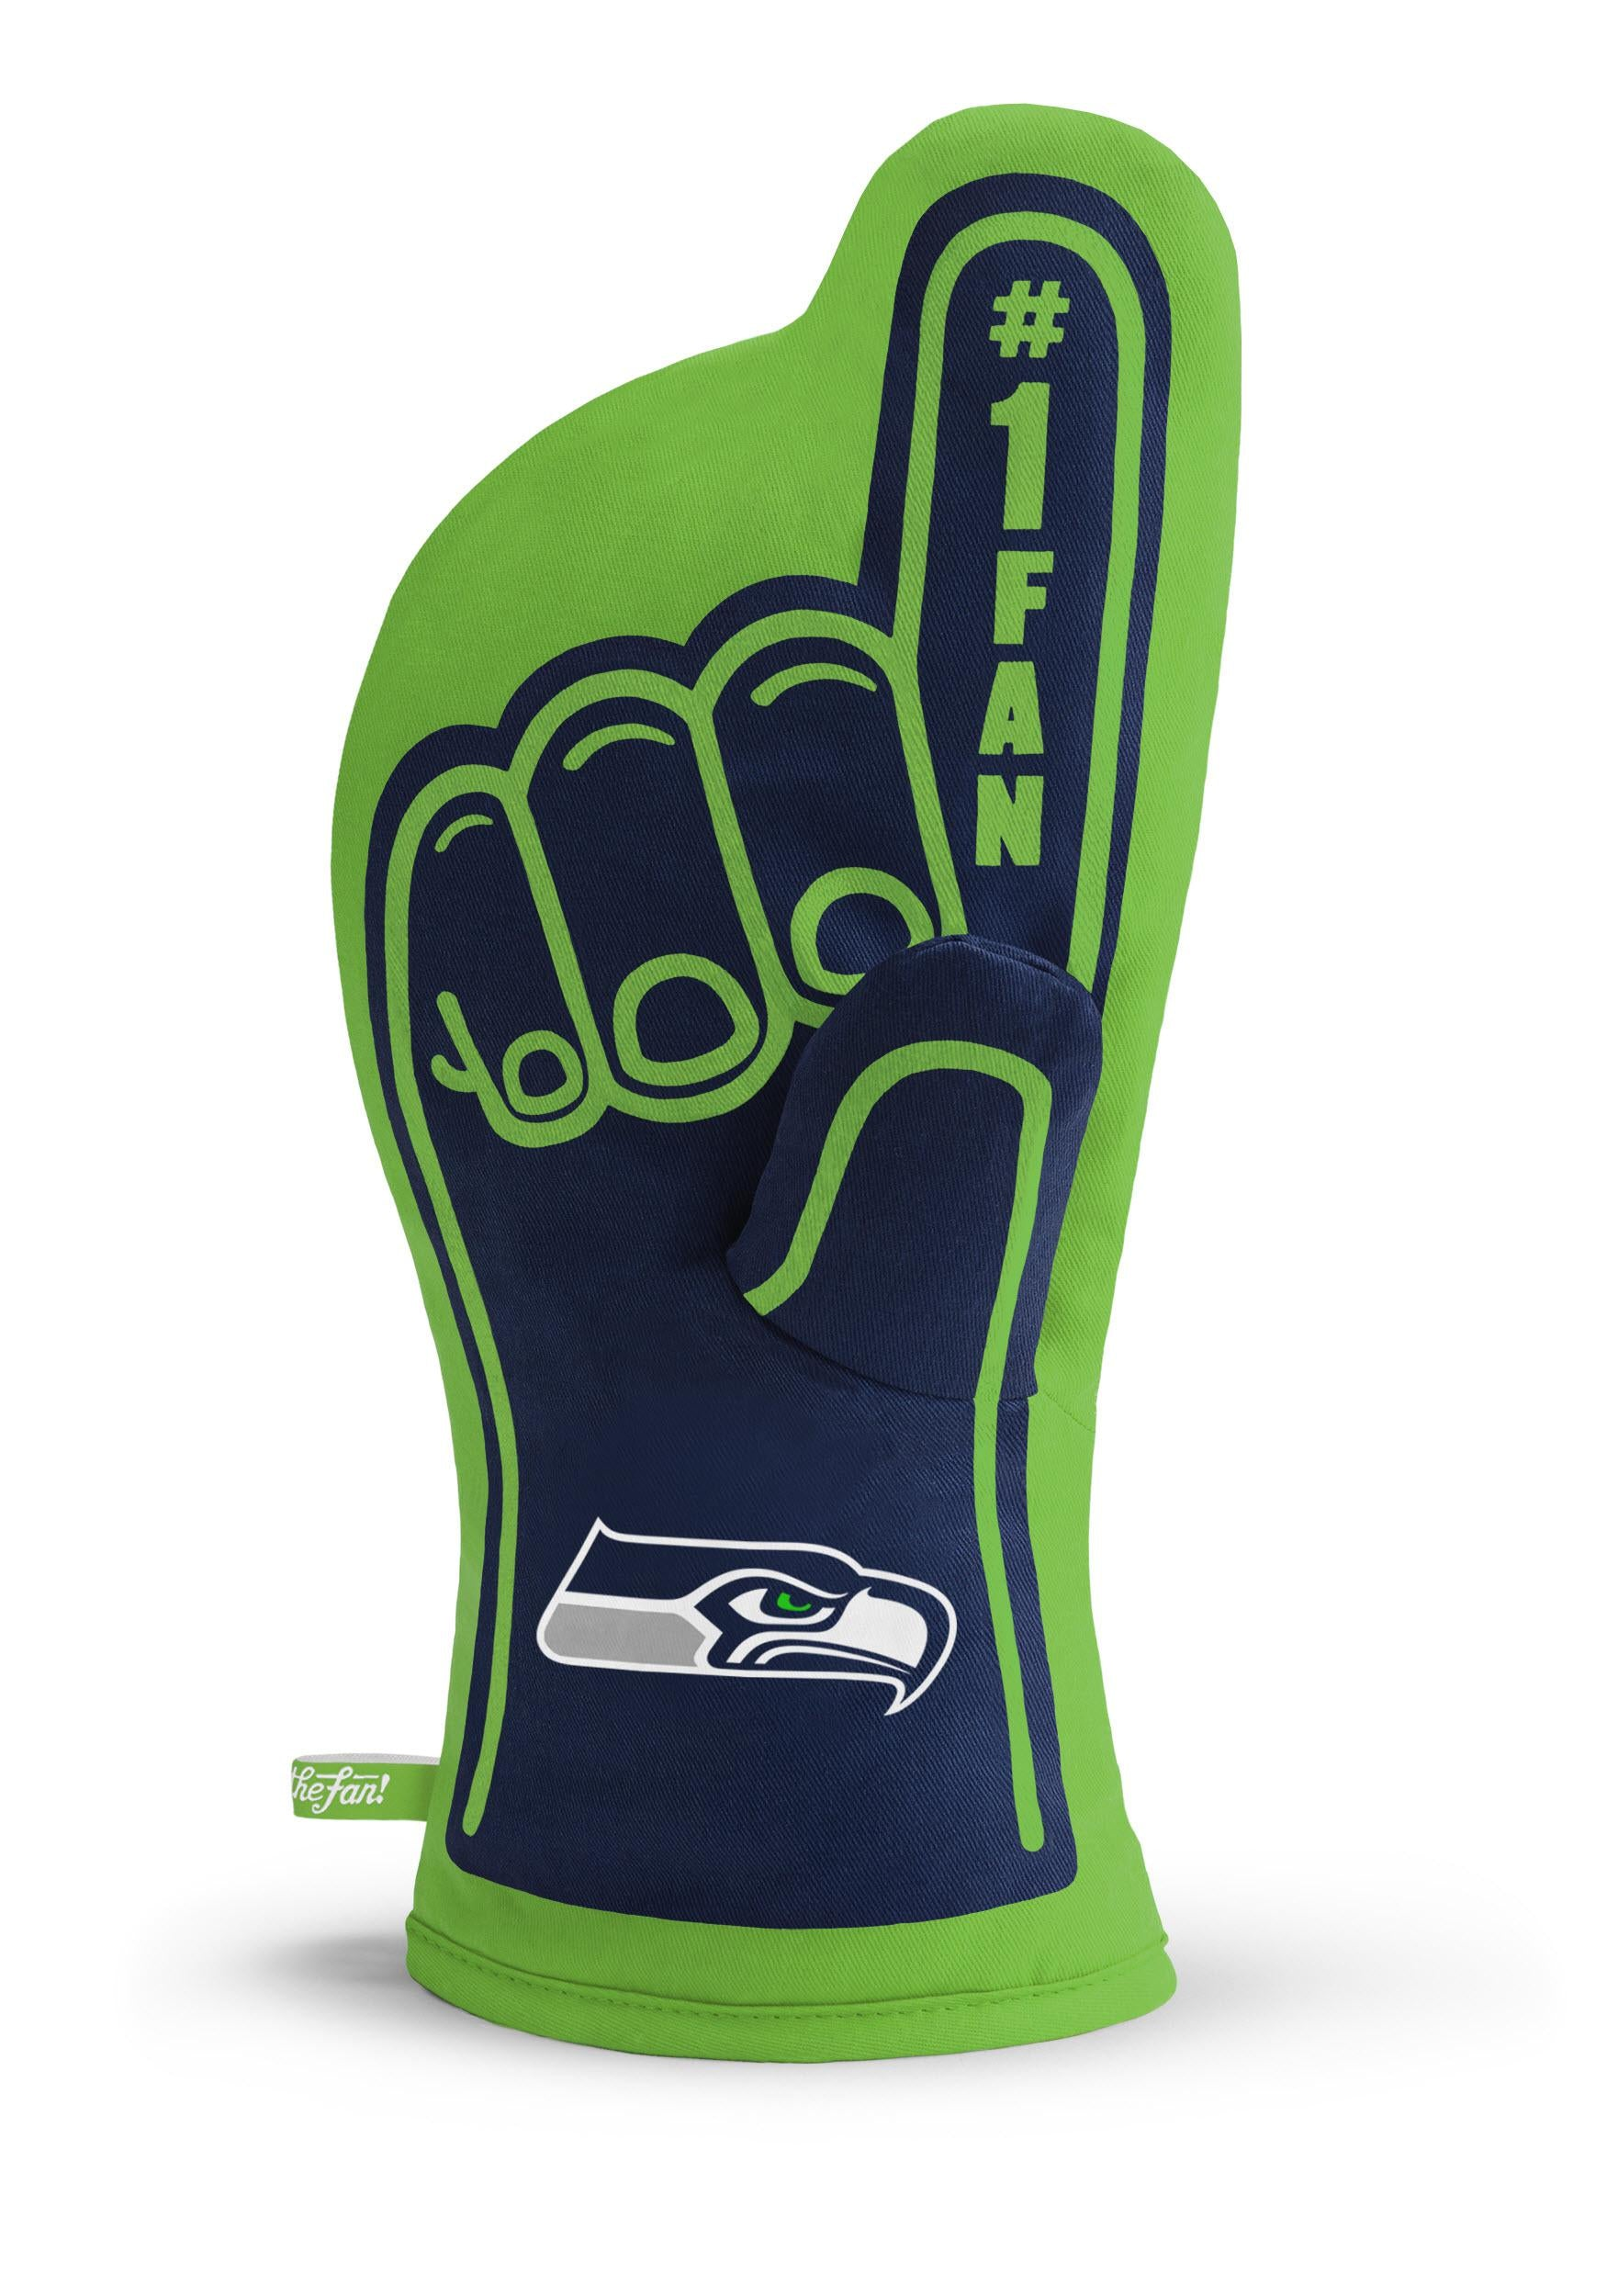 Seattle Seahawks #1 Oven Mitt